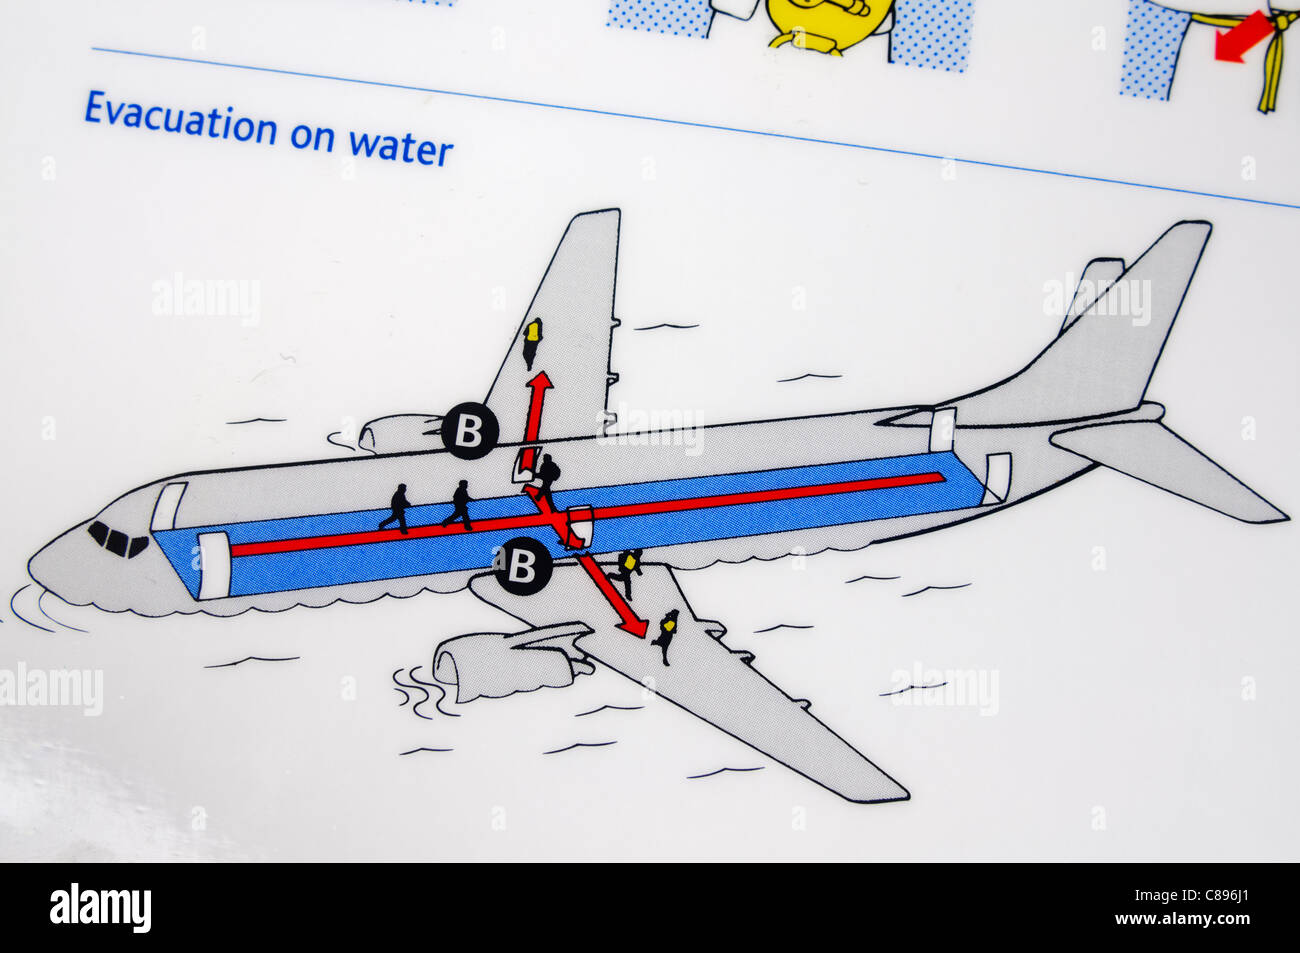 Closeup of an airline safety card showing how to evacuate in the event of an emergency landing on water - Stock Image